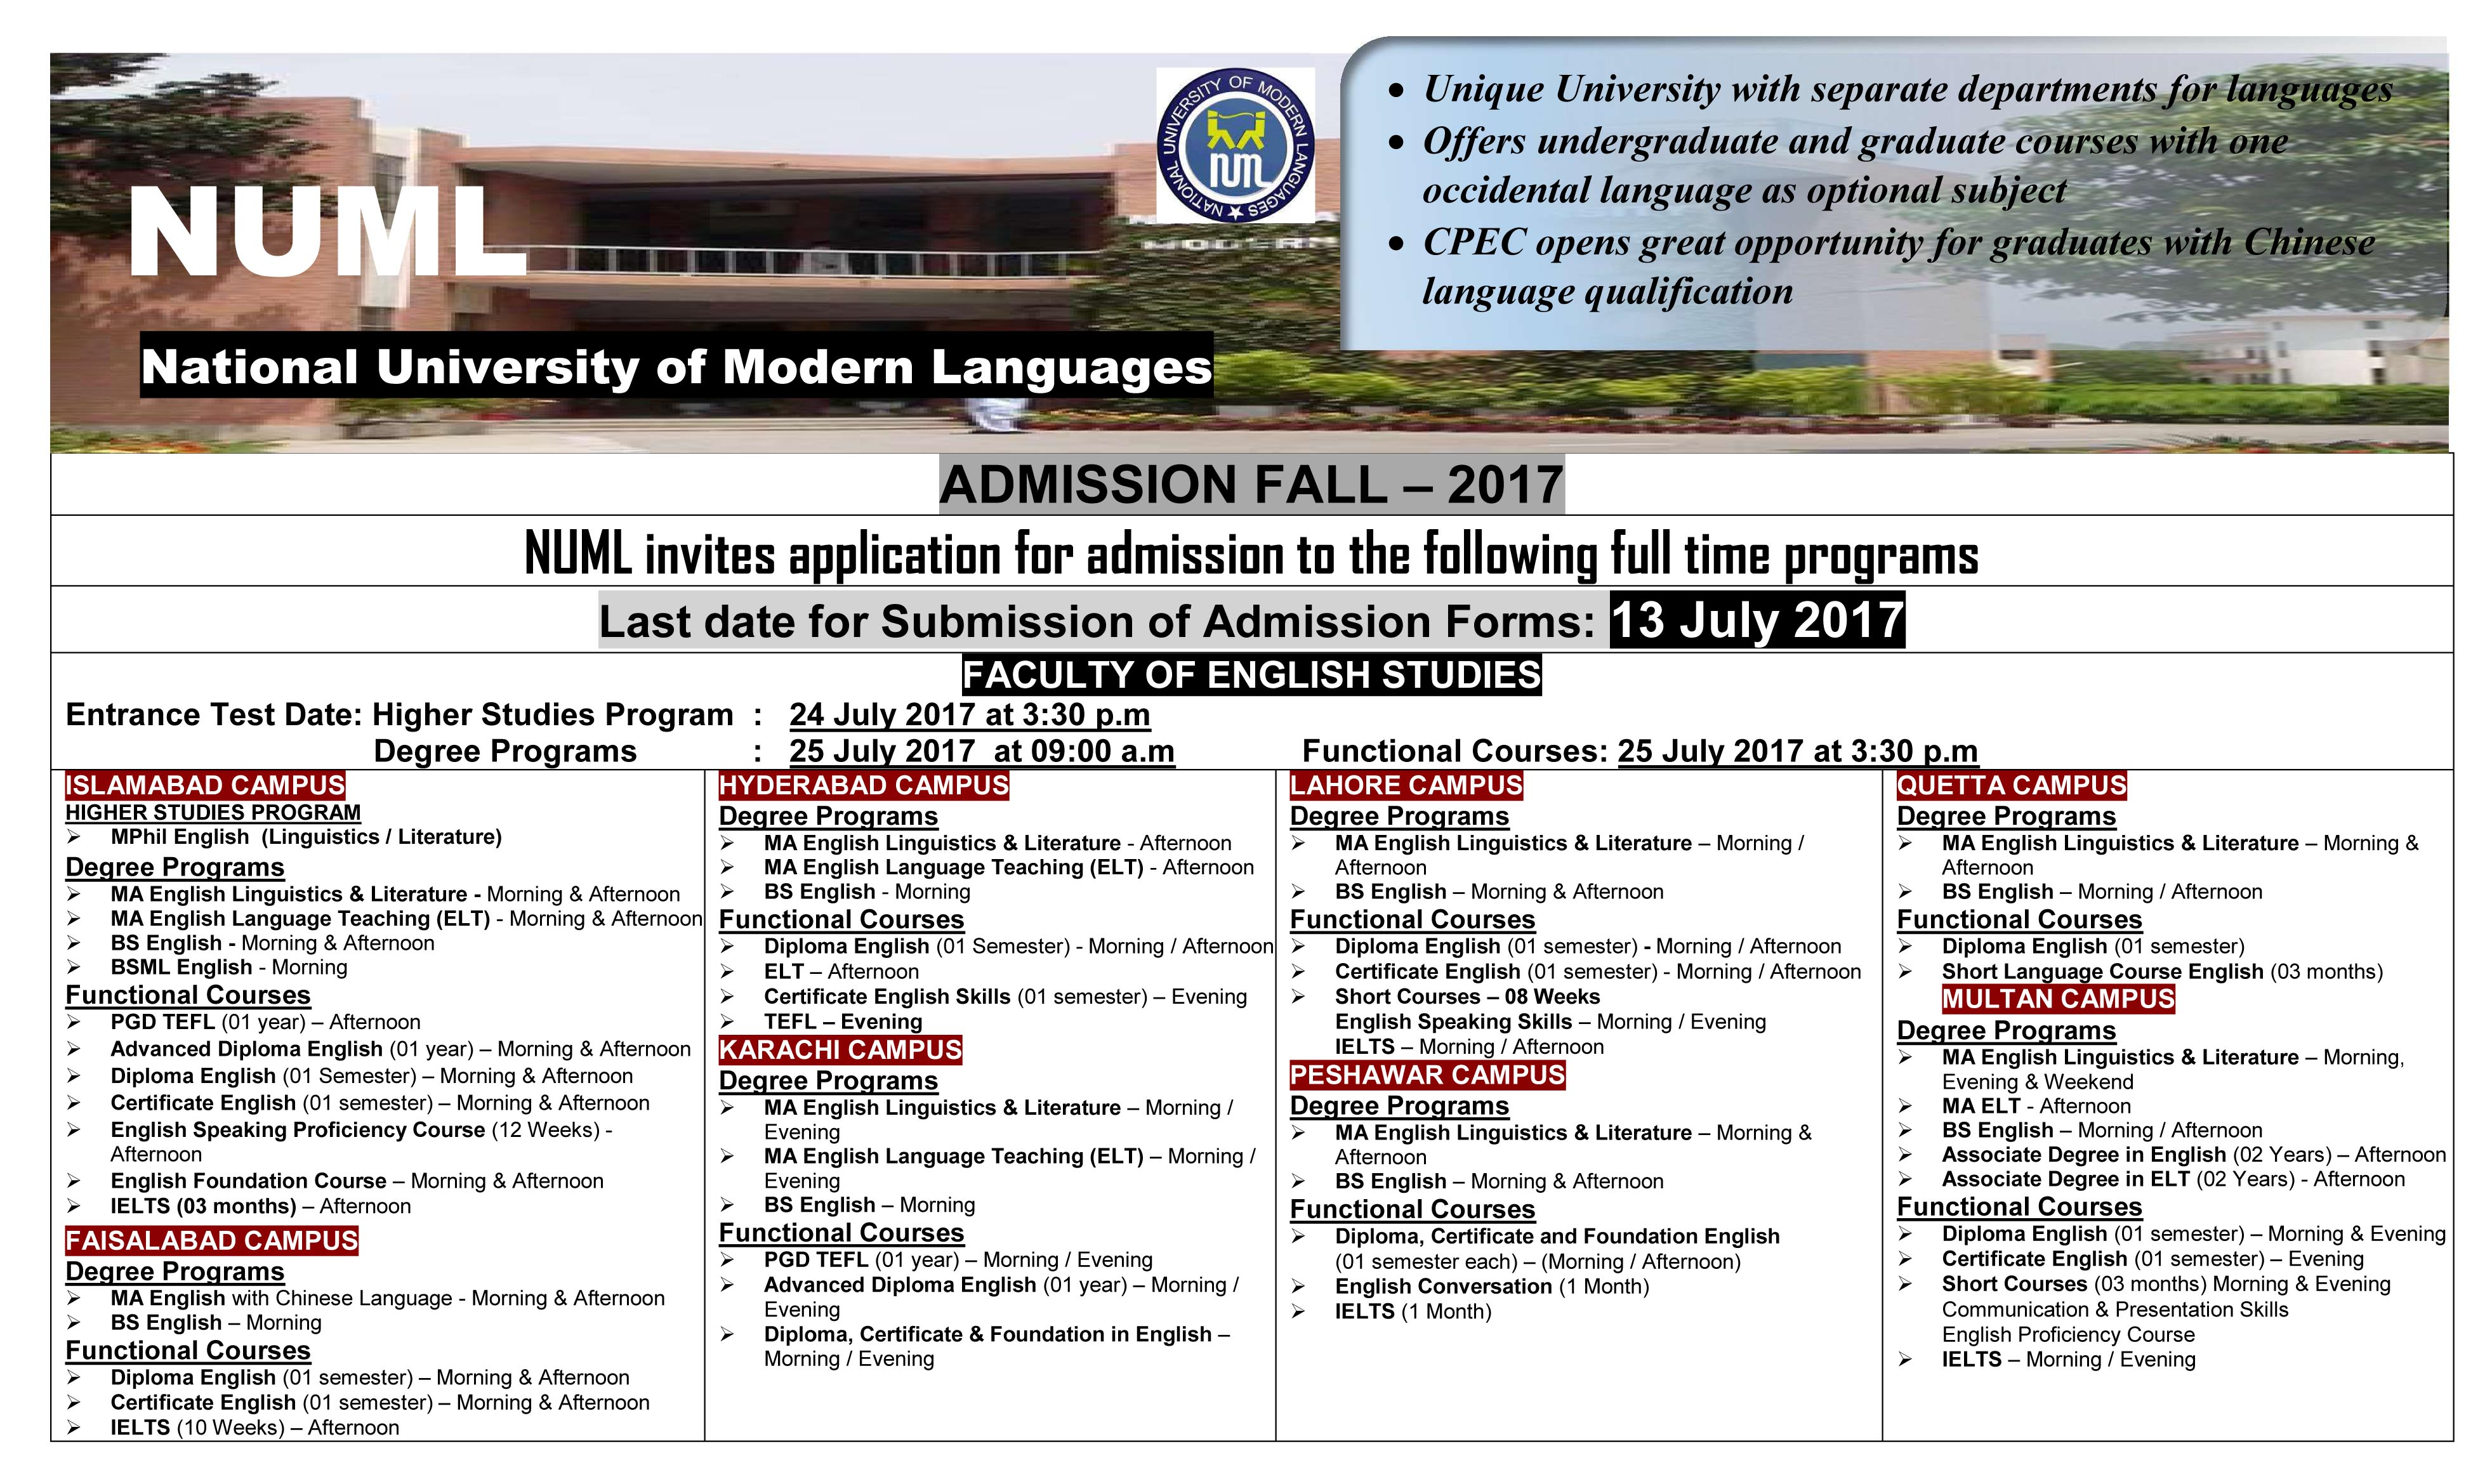 National University of Modern Languages (NUML) Admissions Open Fall – 2017